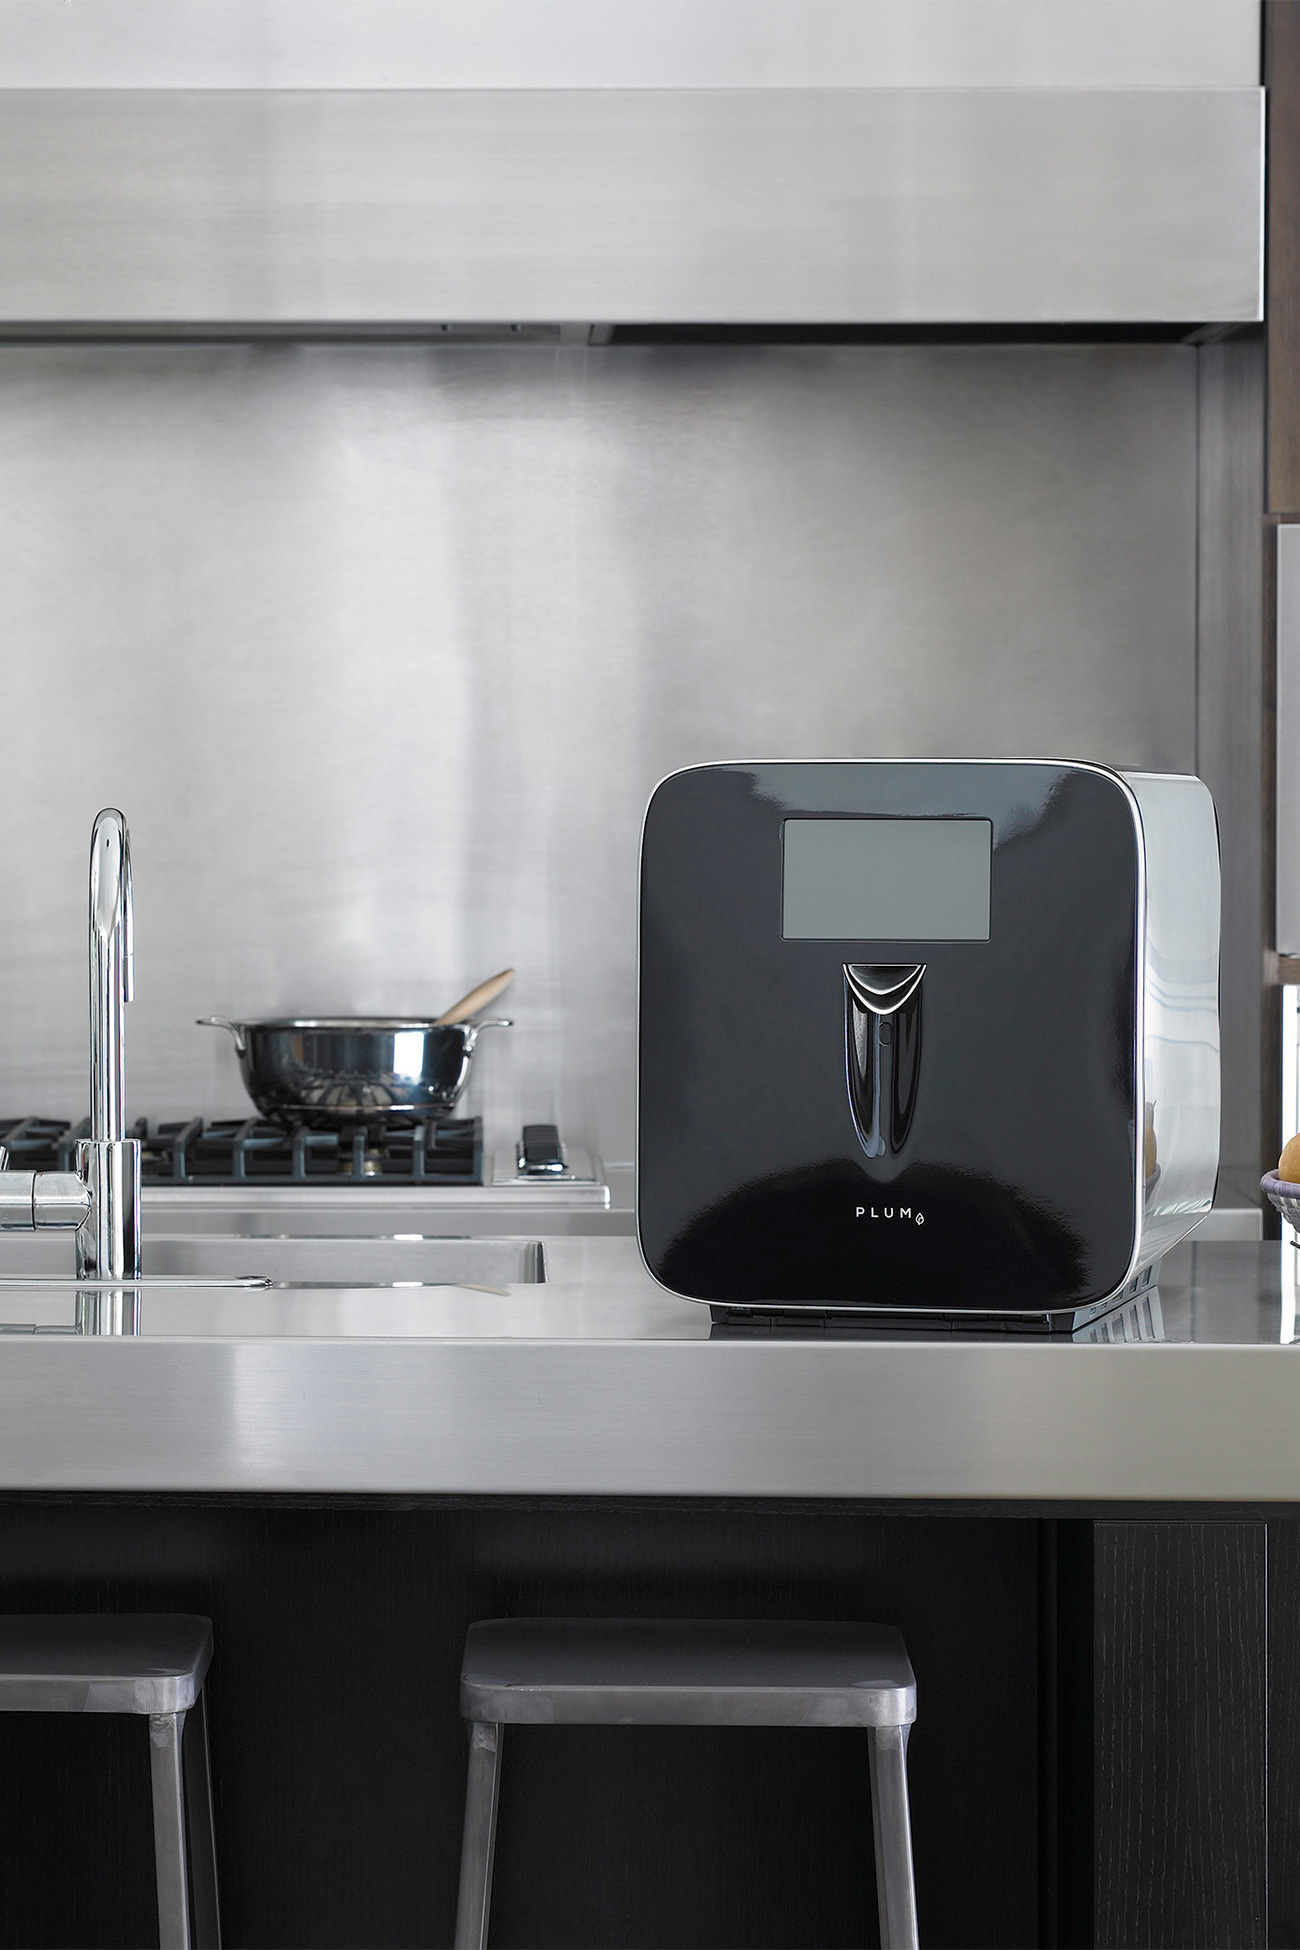 Smart kitchen appliances that look like the future   Carley K.